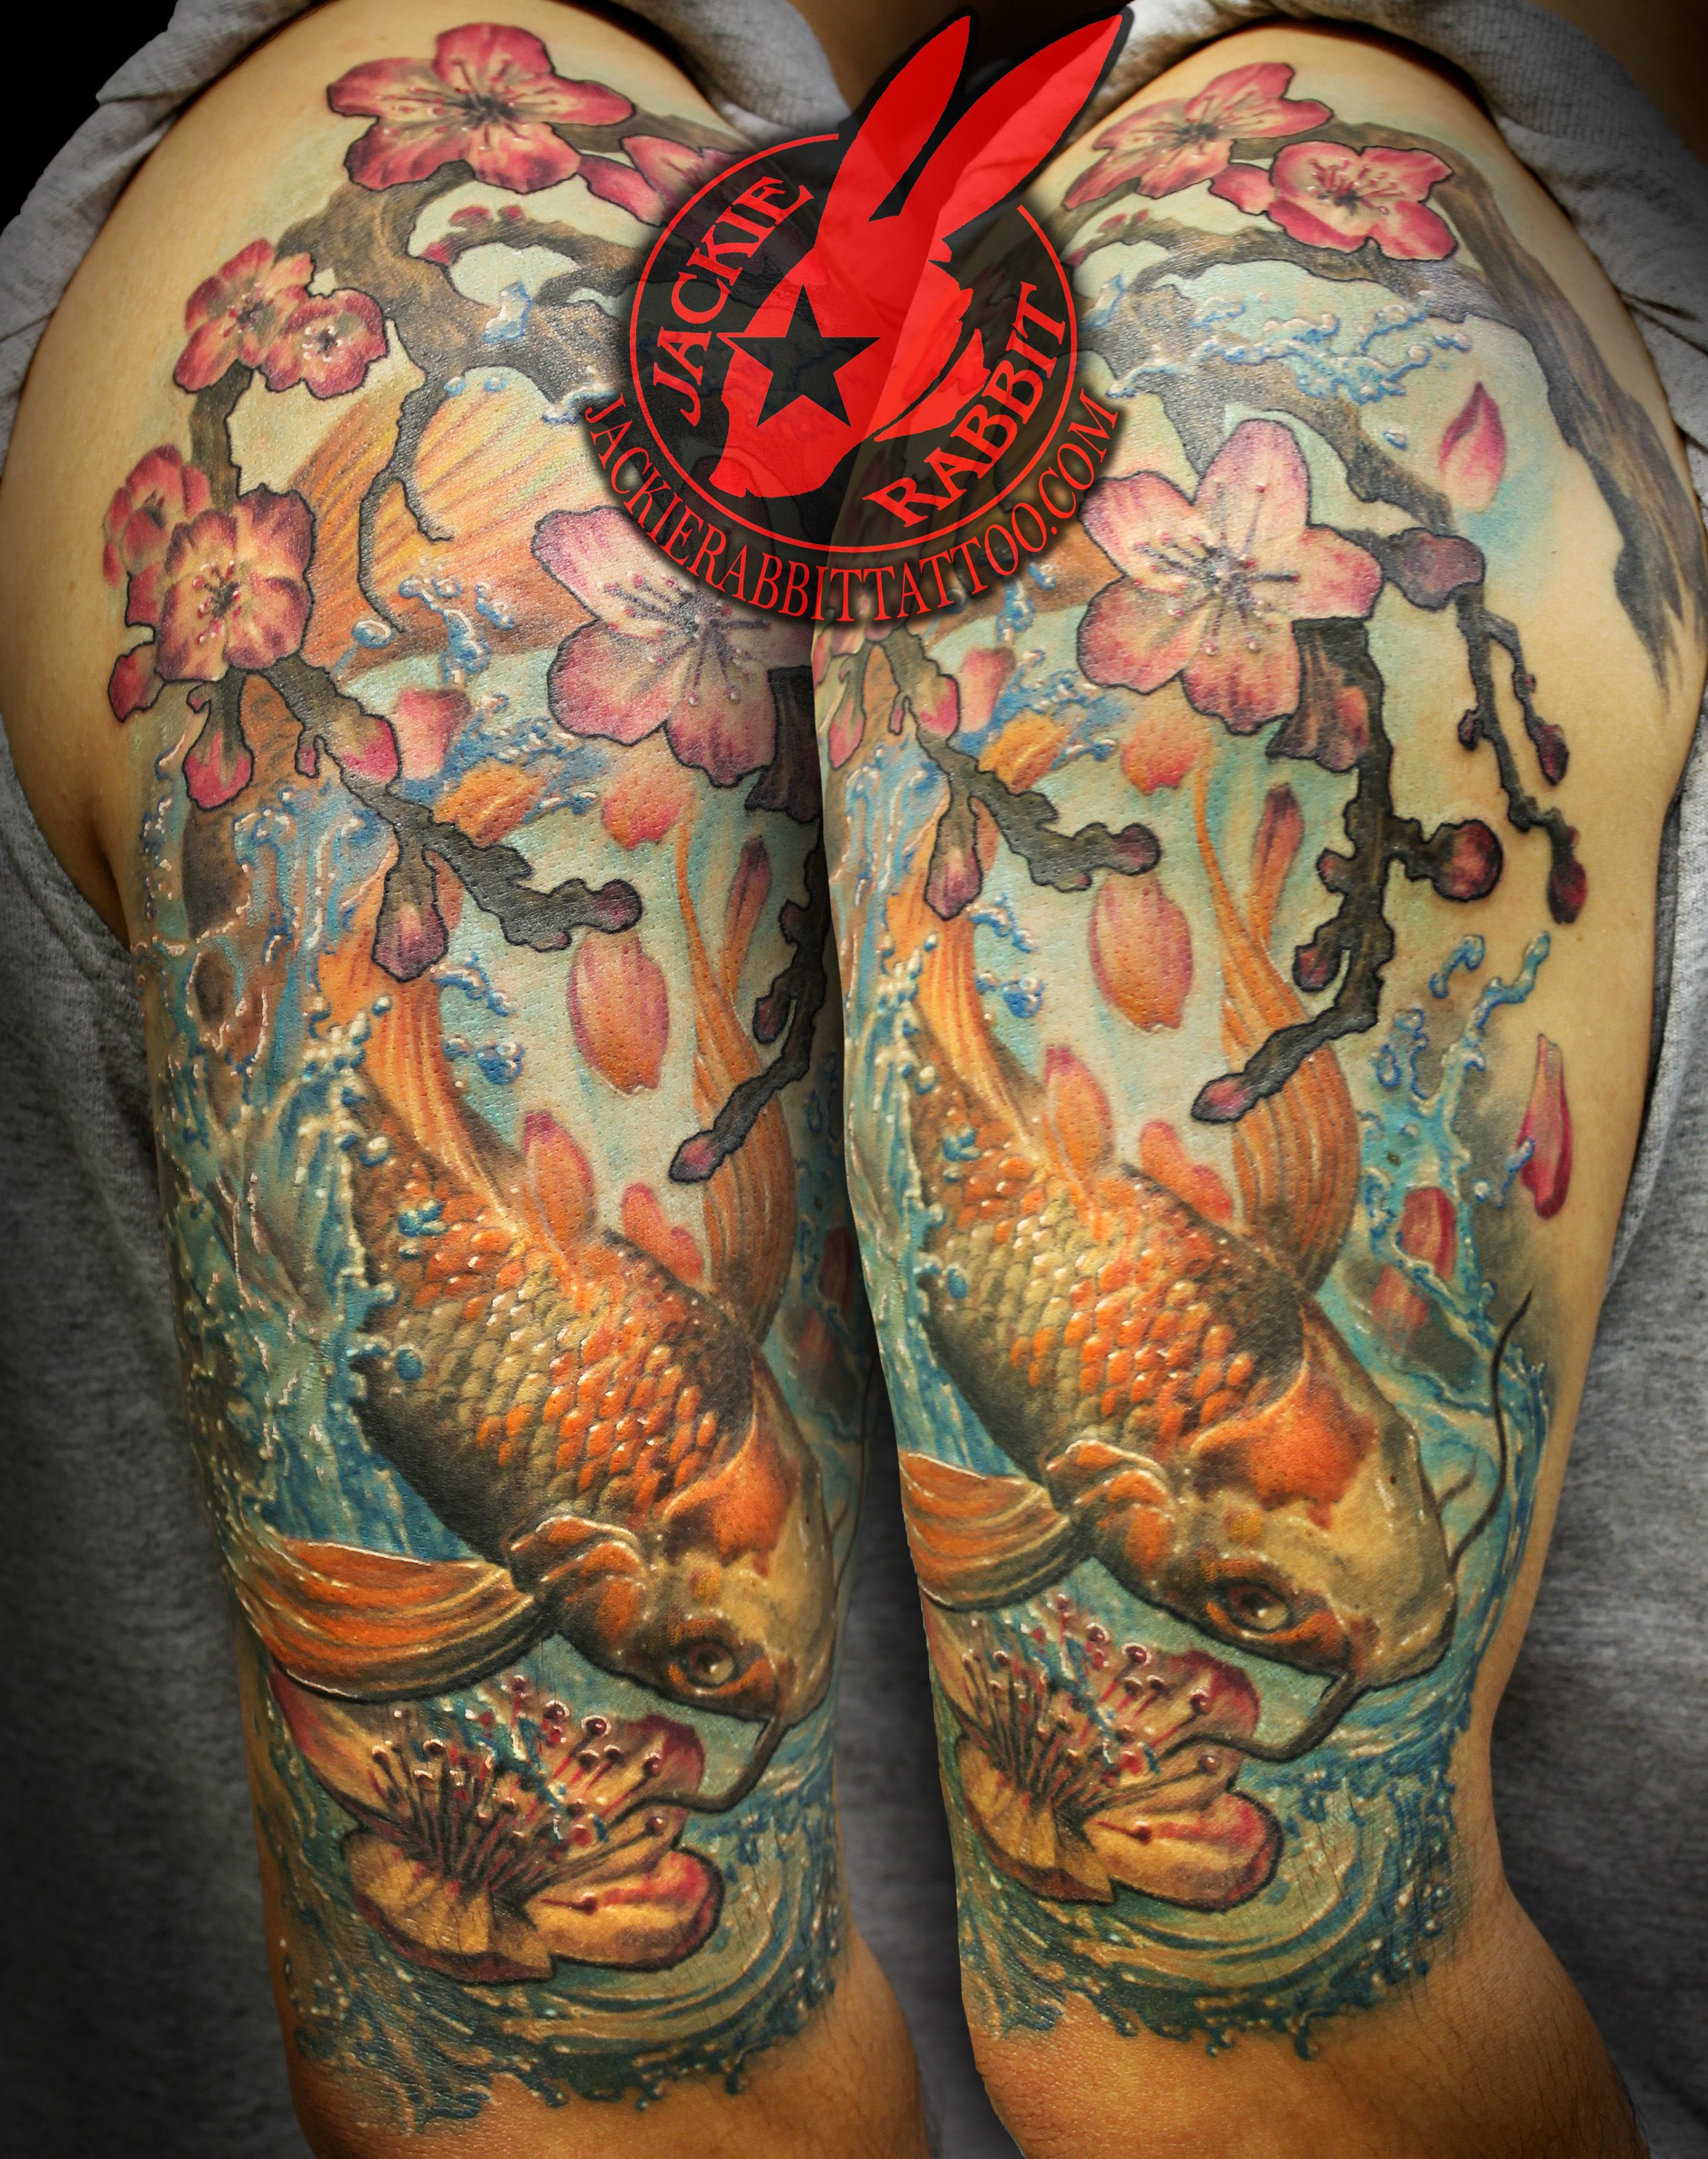 Discussing About Water Tattoo Designs Traditional Japanese Koi Fish Tattoo Cvcaz Tattoo Art Idea Tattoos For Guys Japanese Koi Fish Tattoo Koi Tattoo Sleeve